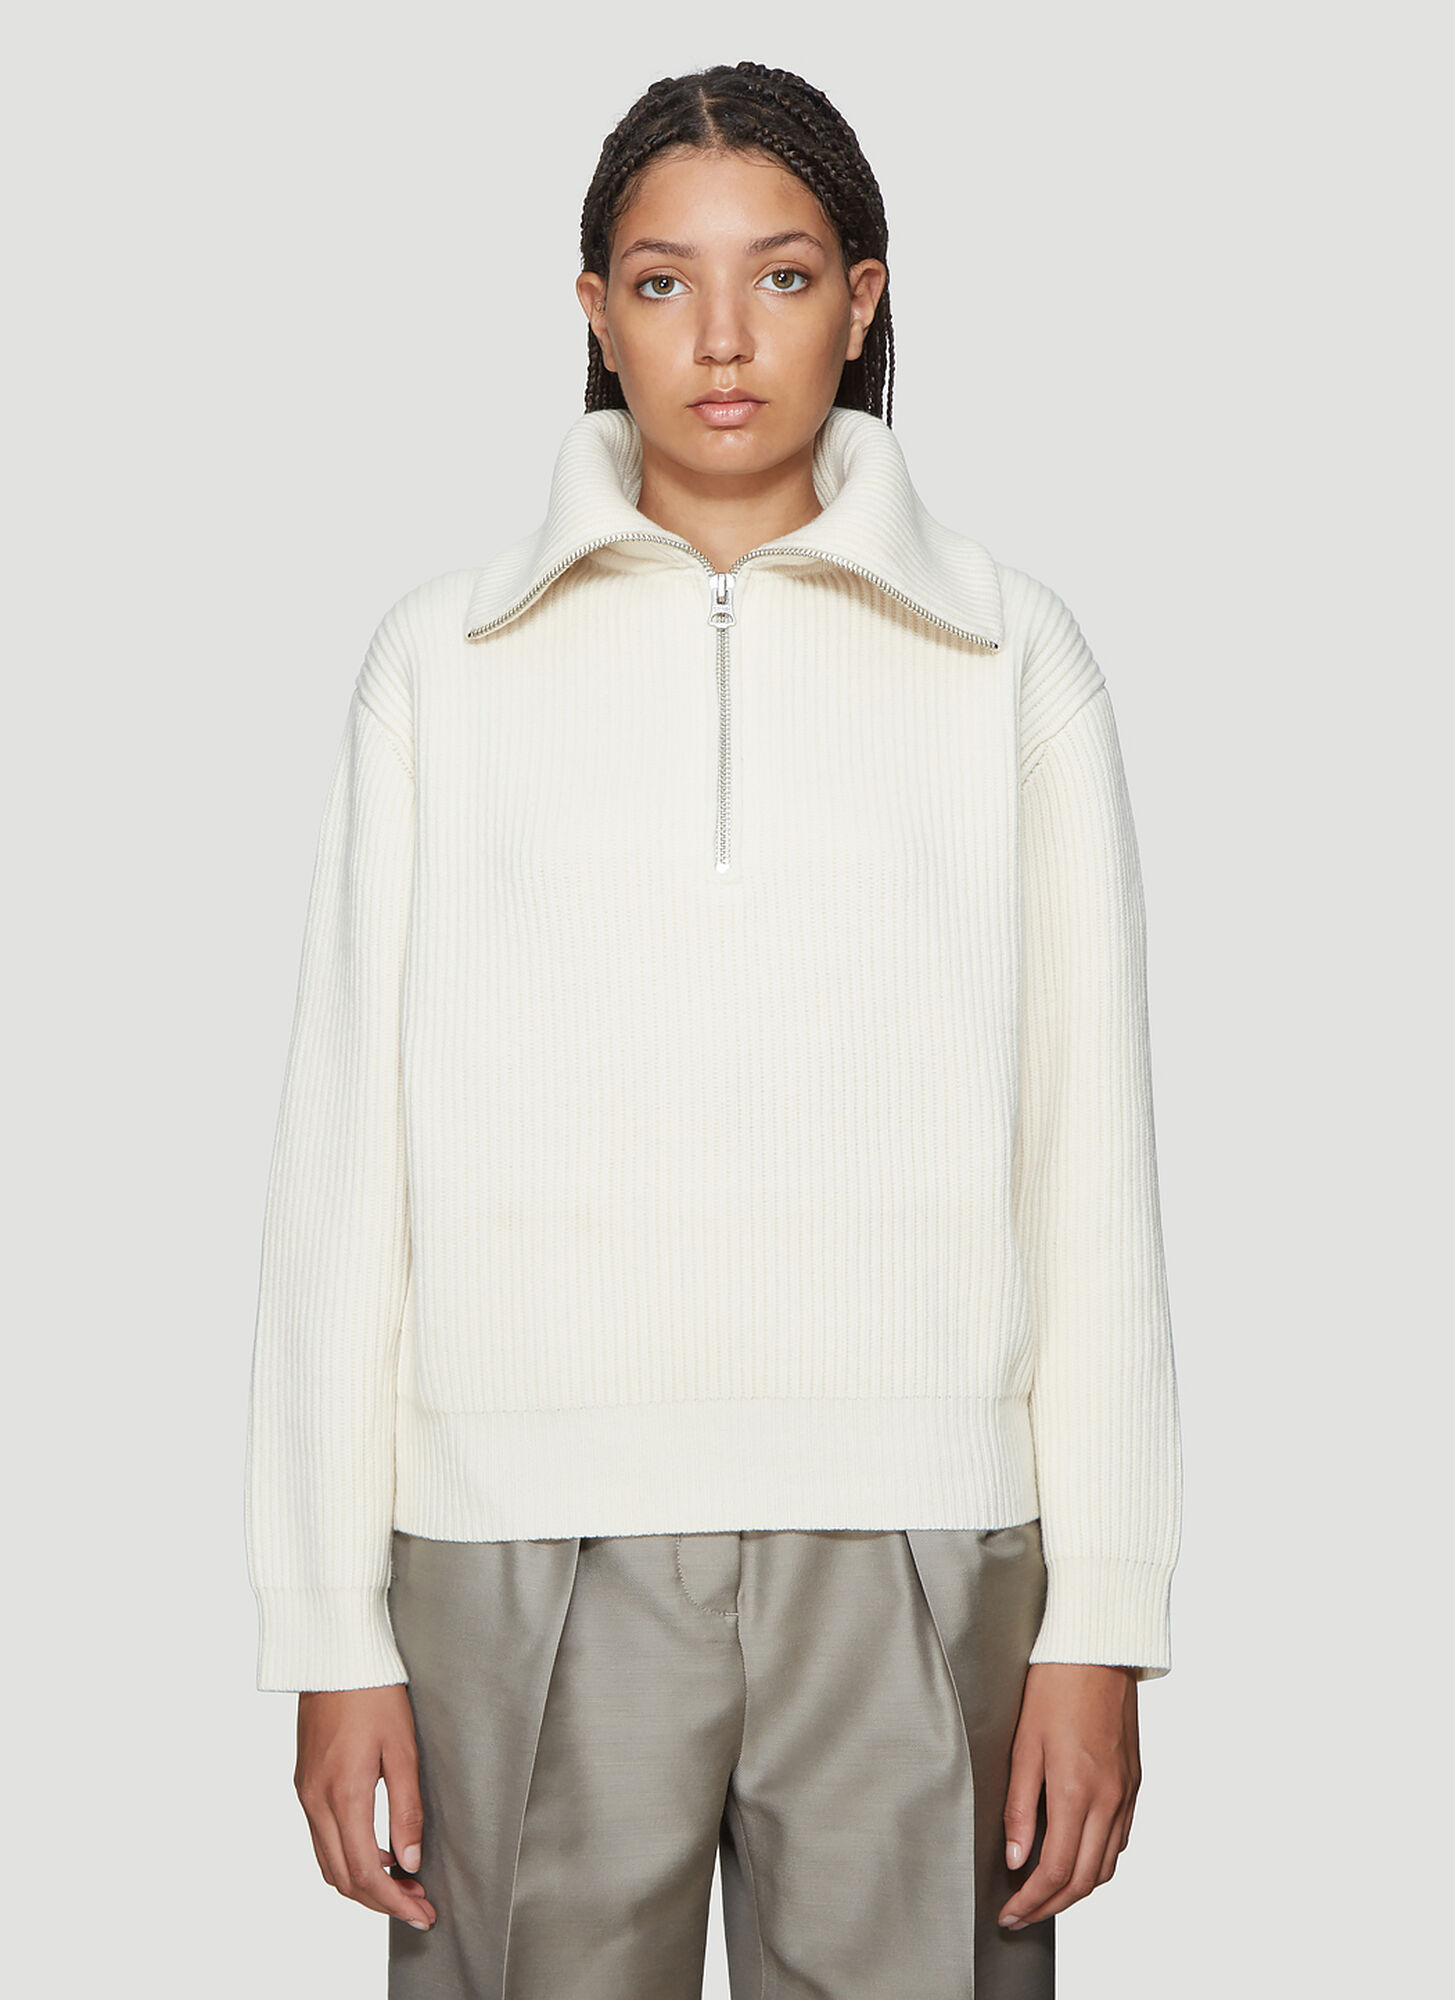 Acne Studios Kelanie Half-Zip Ribbed Sweater in White